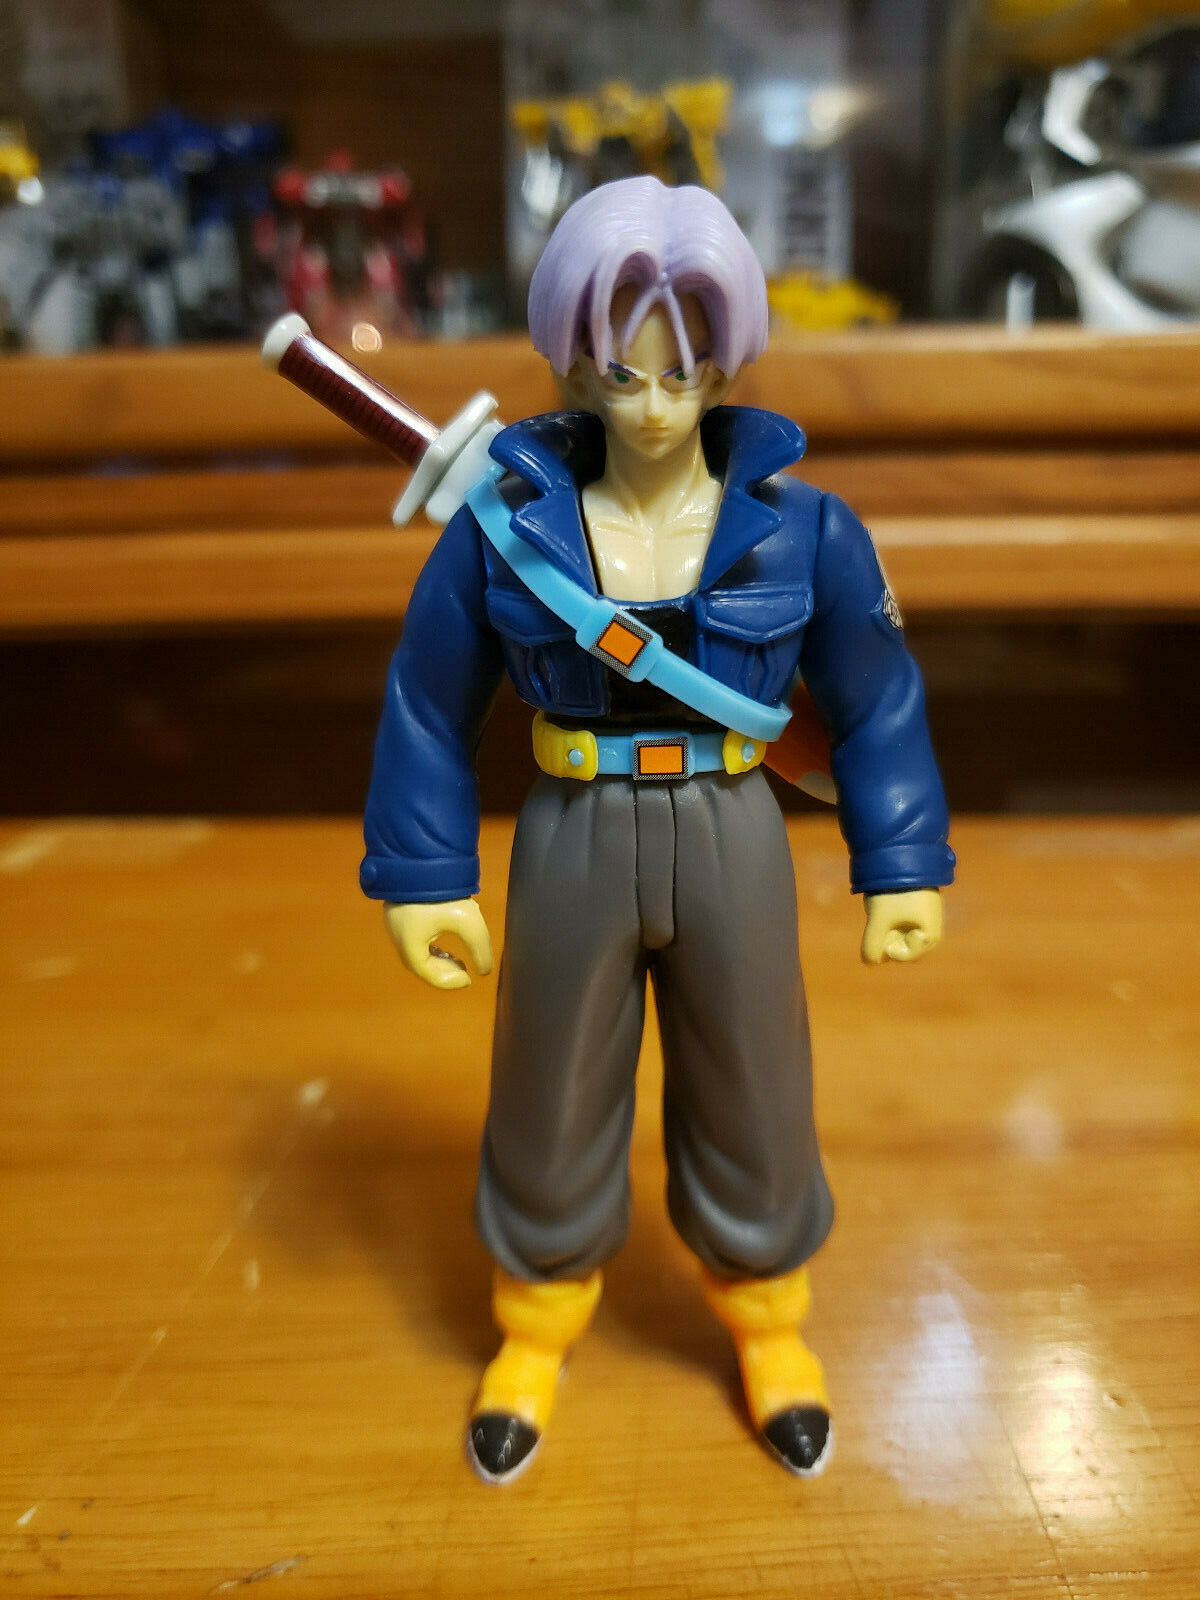 Character:Trunks Vol 5:BANDAI Dragonball Z  and Dragon Ball GT super battle collection AB Toys & Irwin